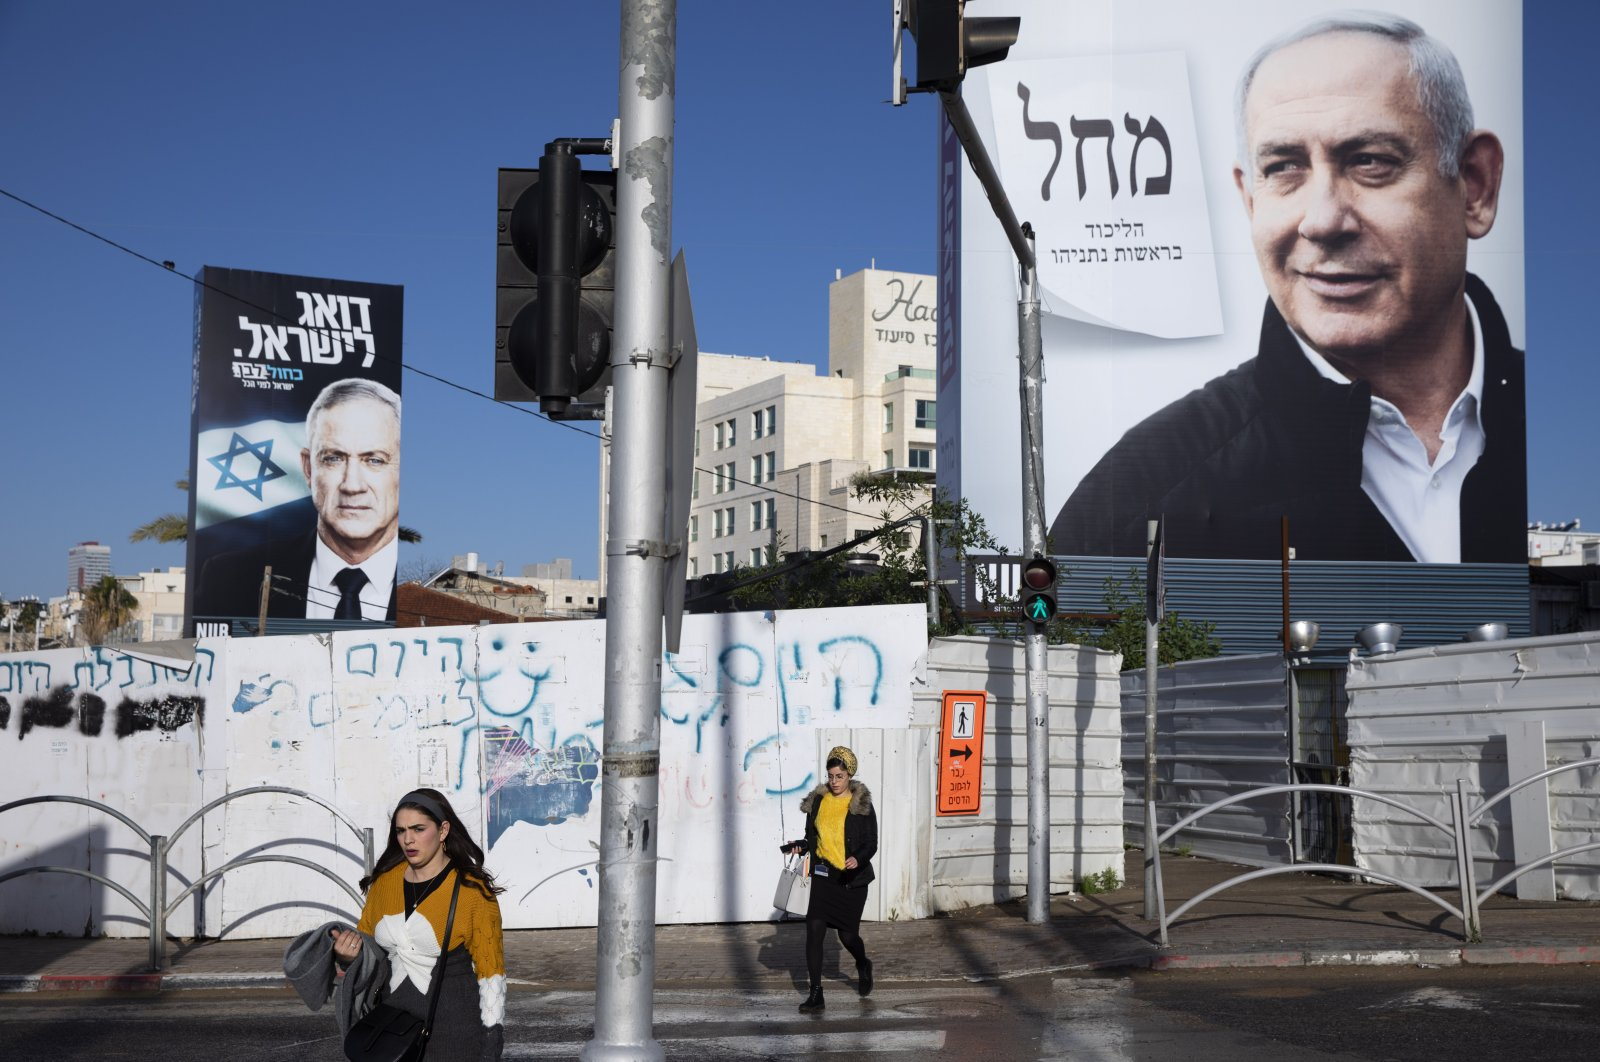 People walk next to election campaign billboards showing Israeli Prime Minister Benjamin Netanyahu (R) and Benny Gantz (L), Bnei Brak, March 1, 2020. (AP Photo)